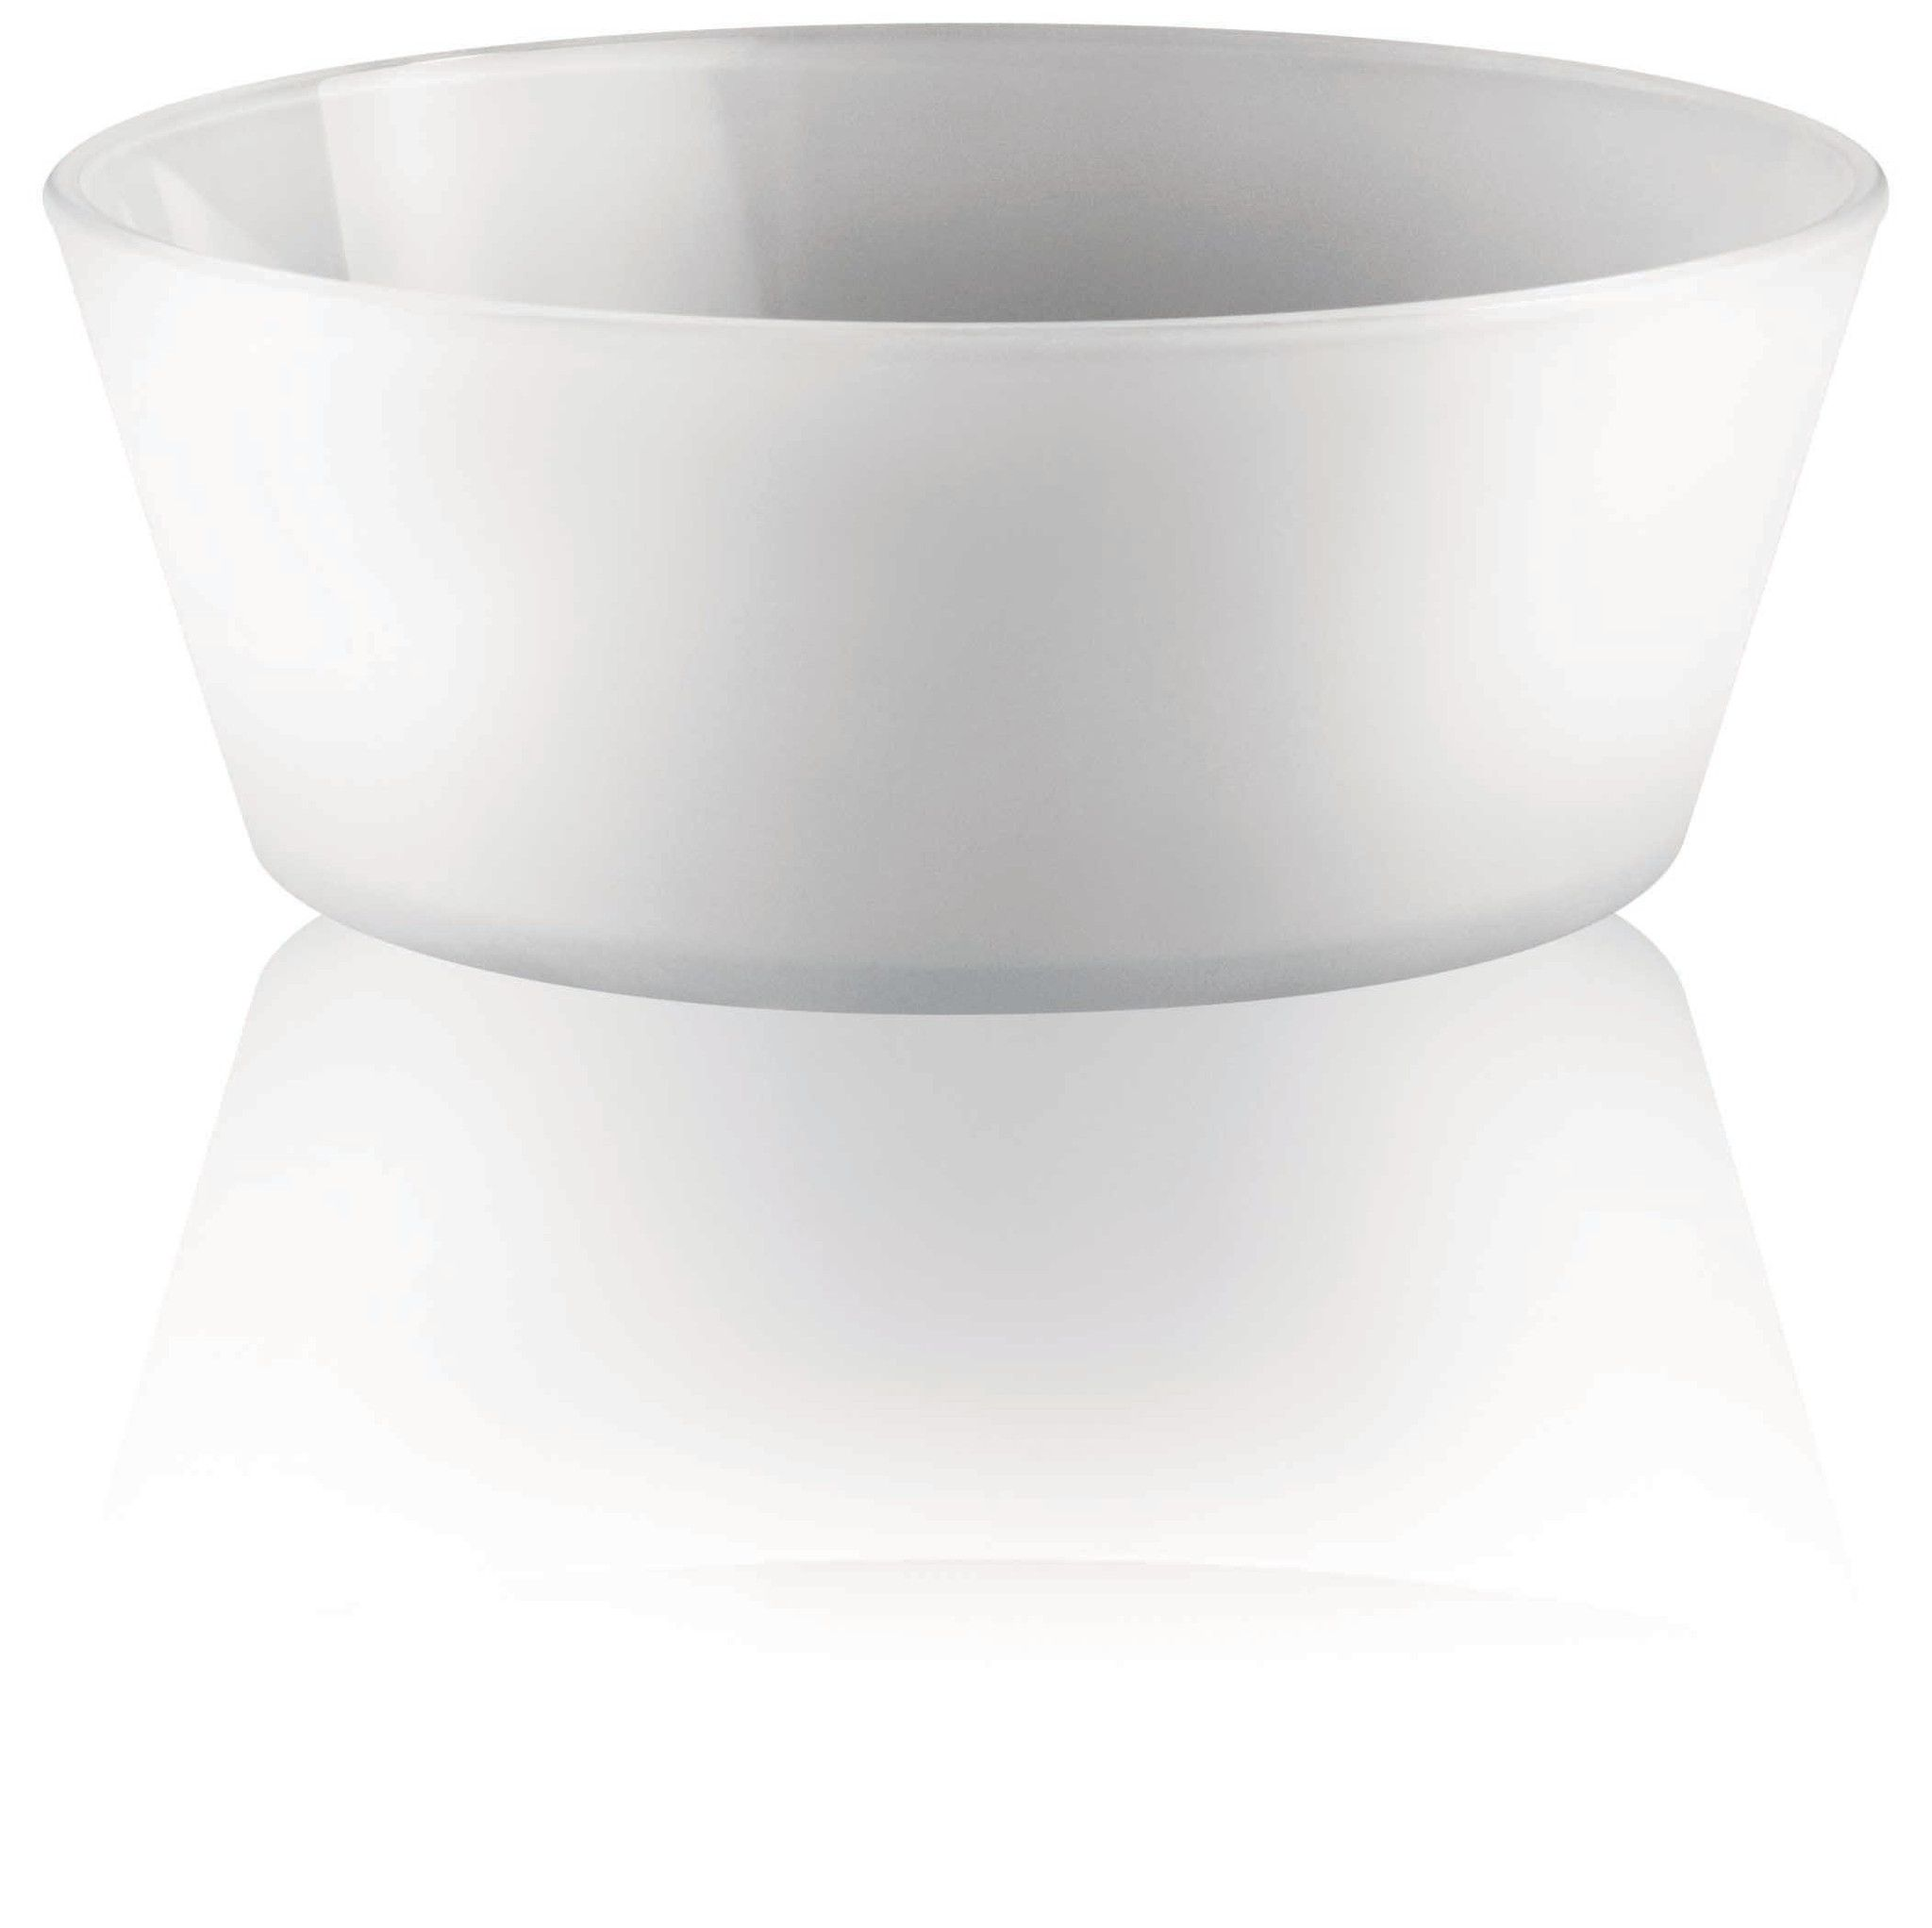 Corelle_Medium_Serving_Bowl